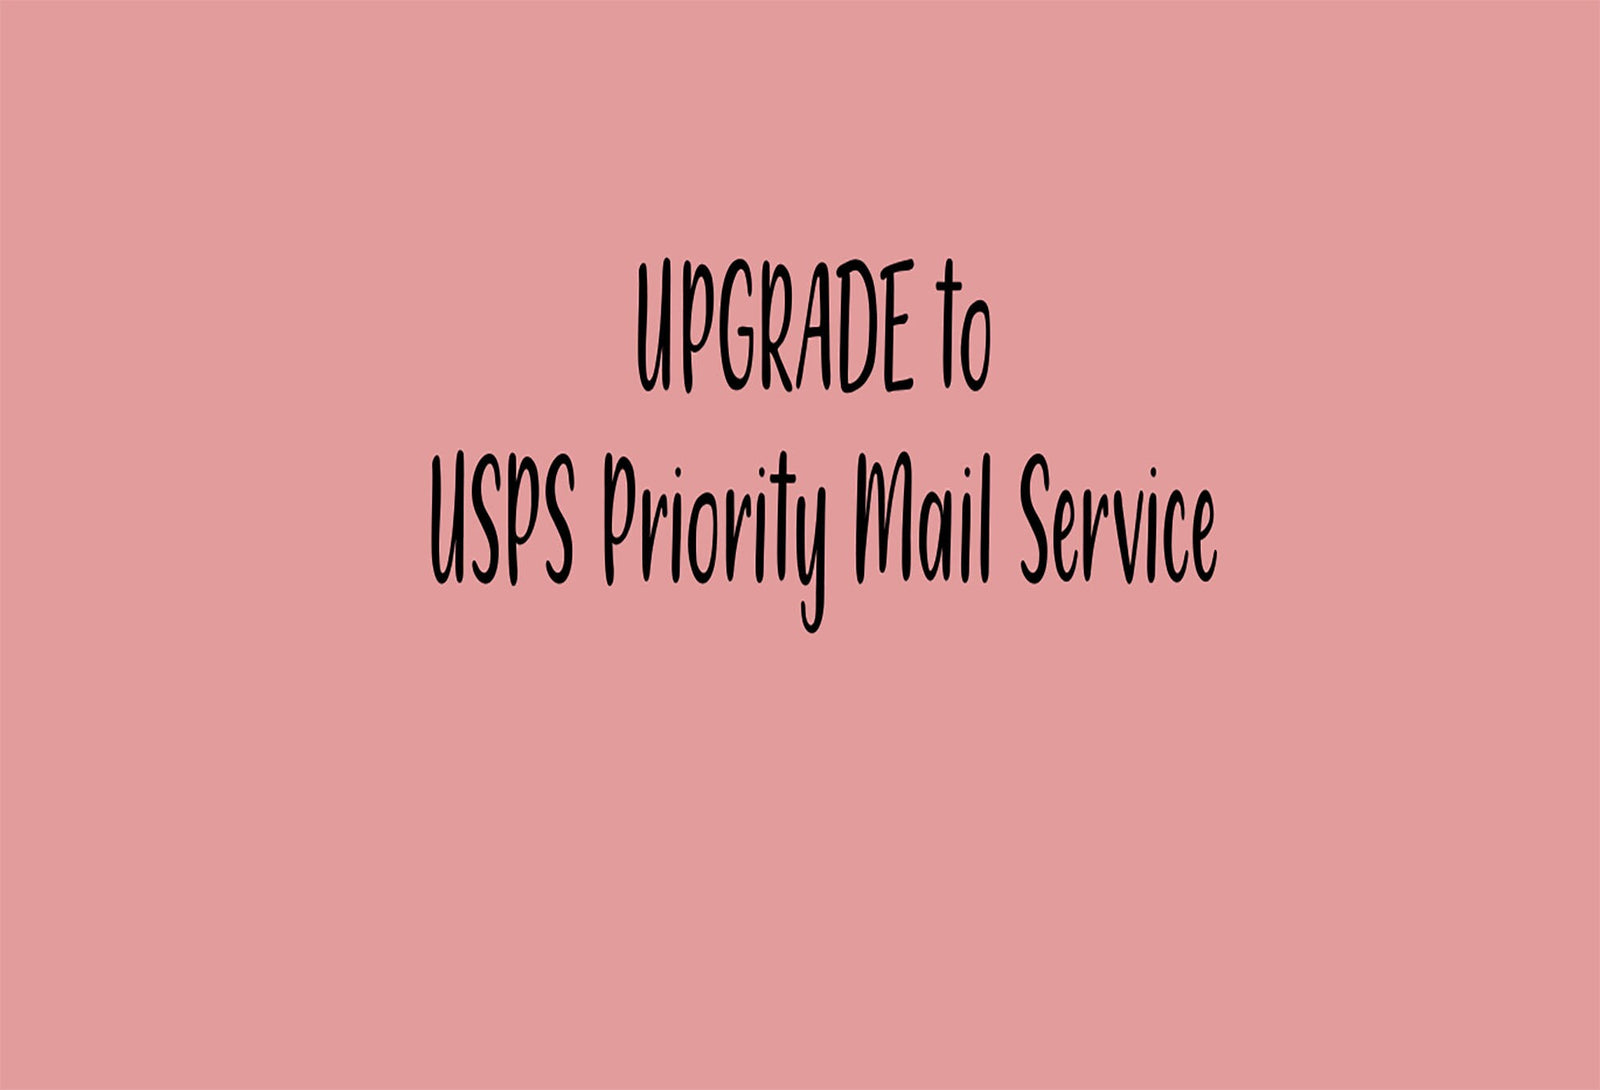 Upgrade to USPS Priority Shipping Service*